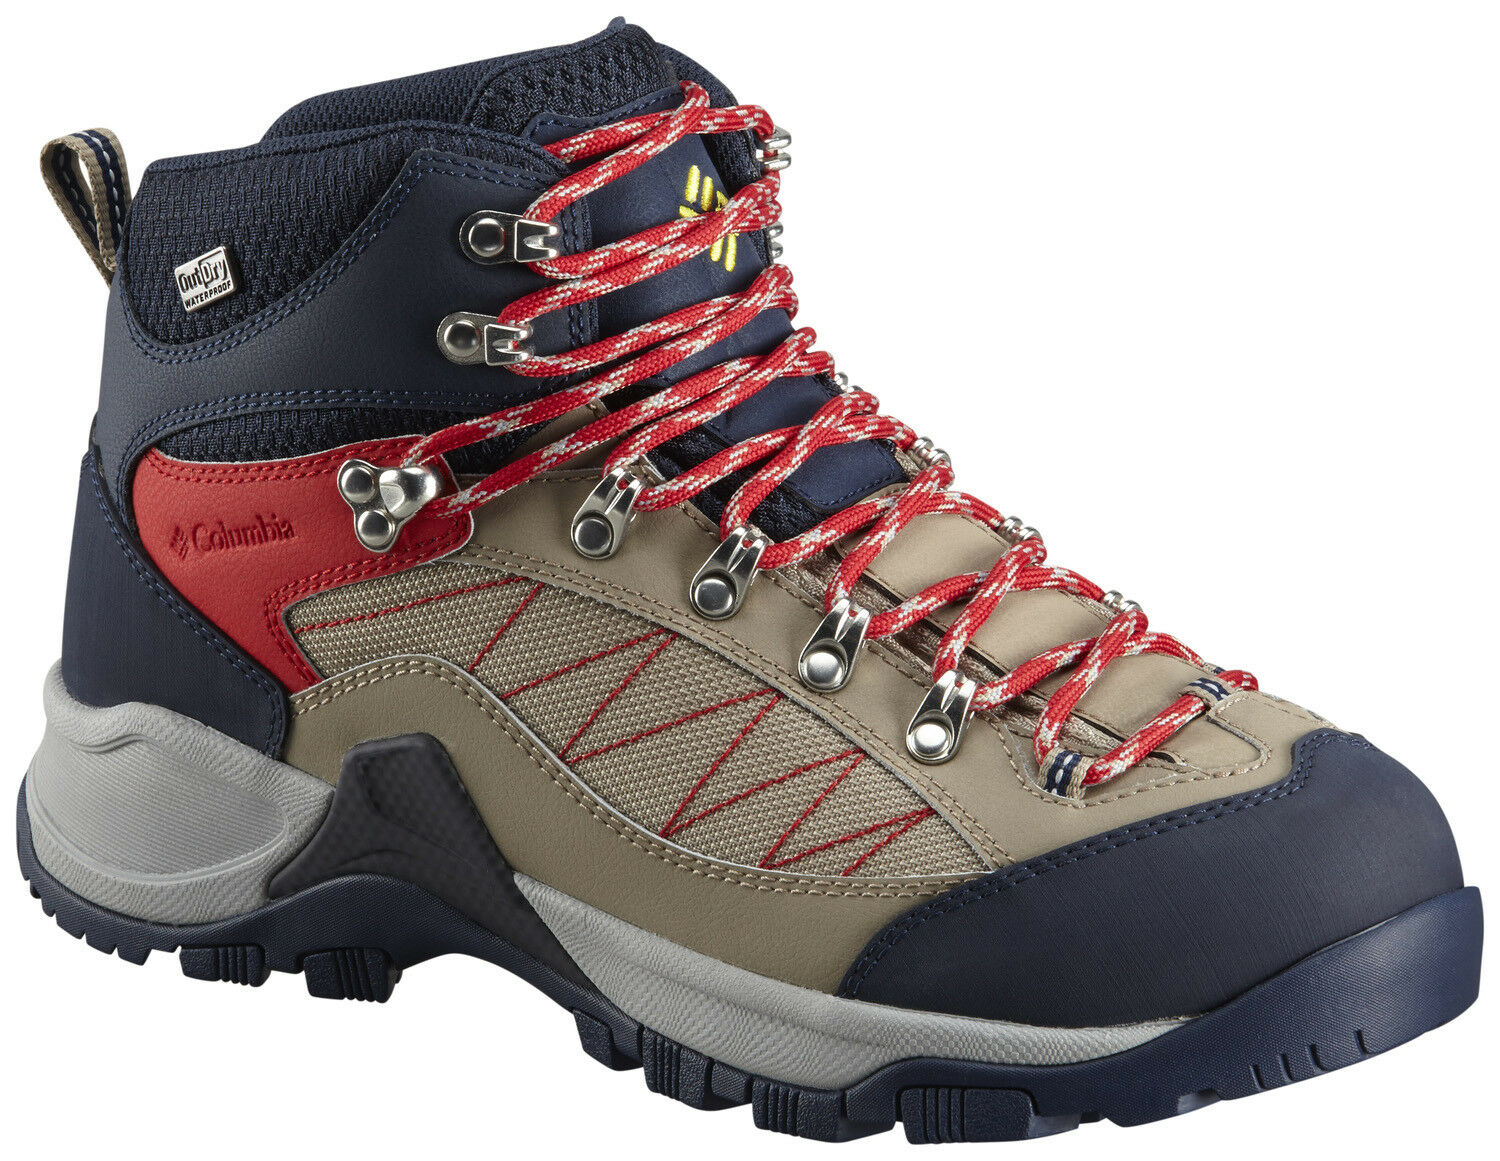 Men's Columbia Table Rock Outdry shoes Collegiate Navy